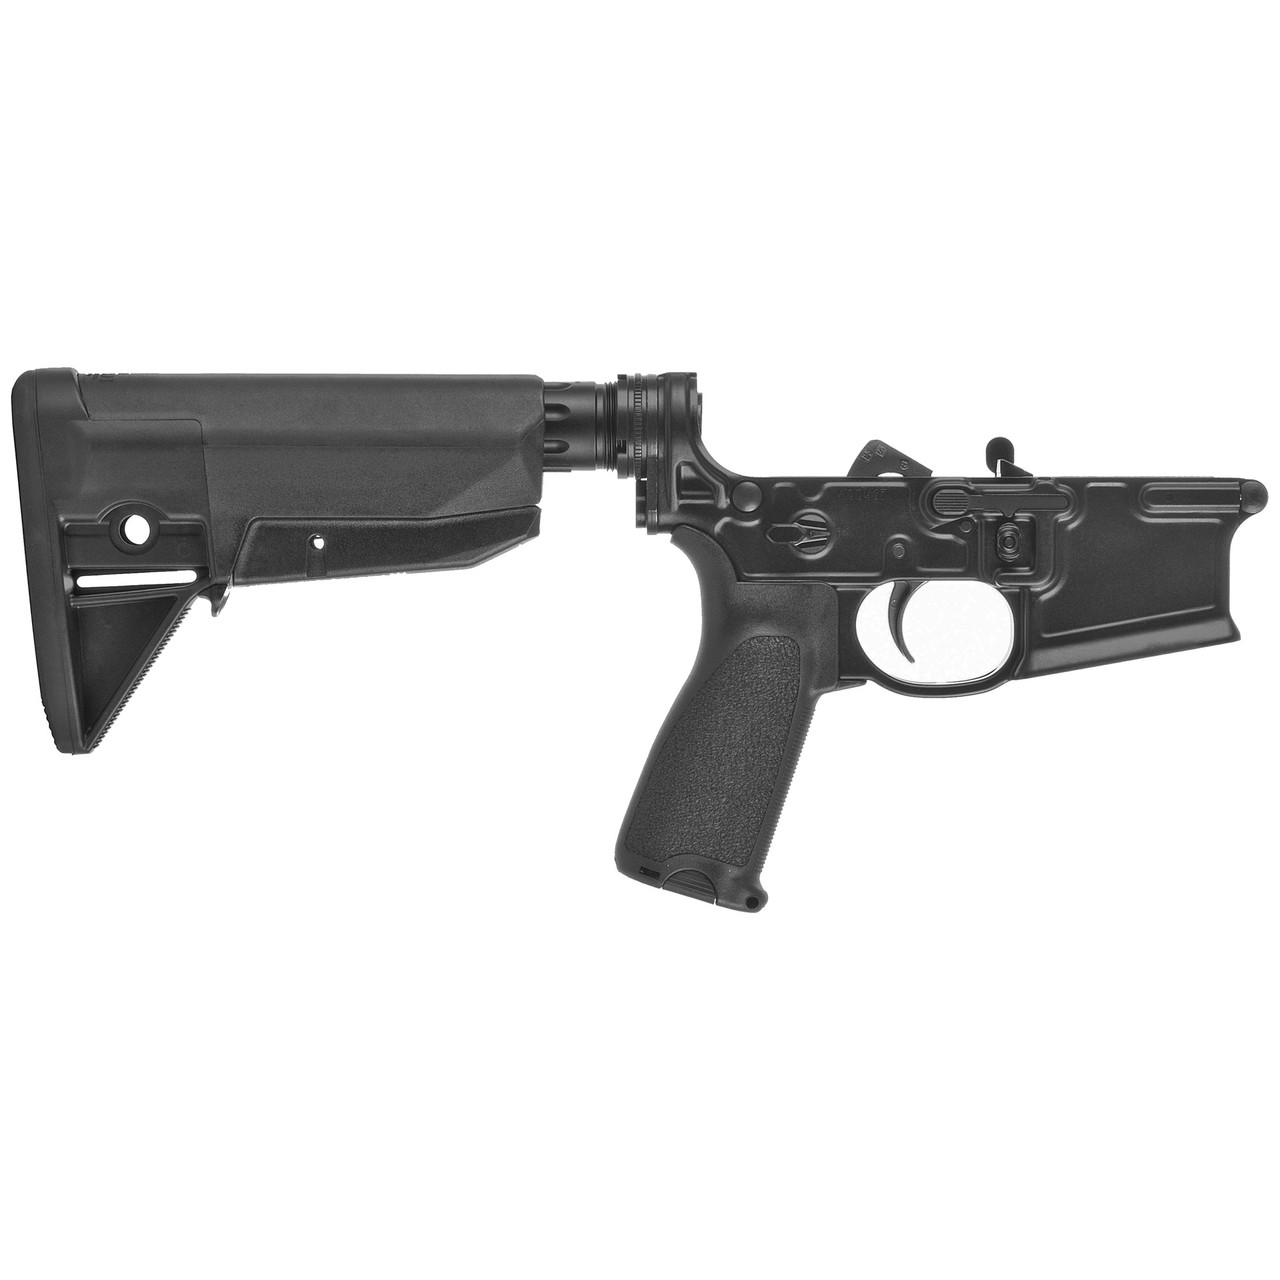 PWS MK1 MOD 2-M Complete Lower Receiver CALIFORNIA LEGAL - .223/5.56